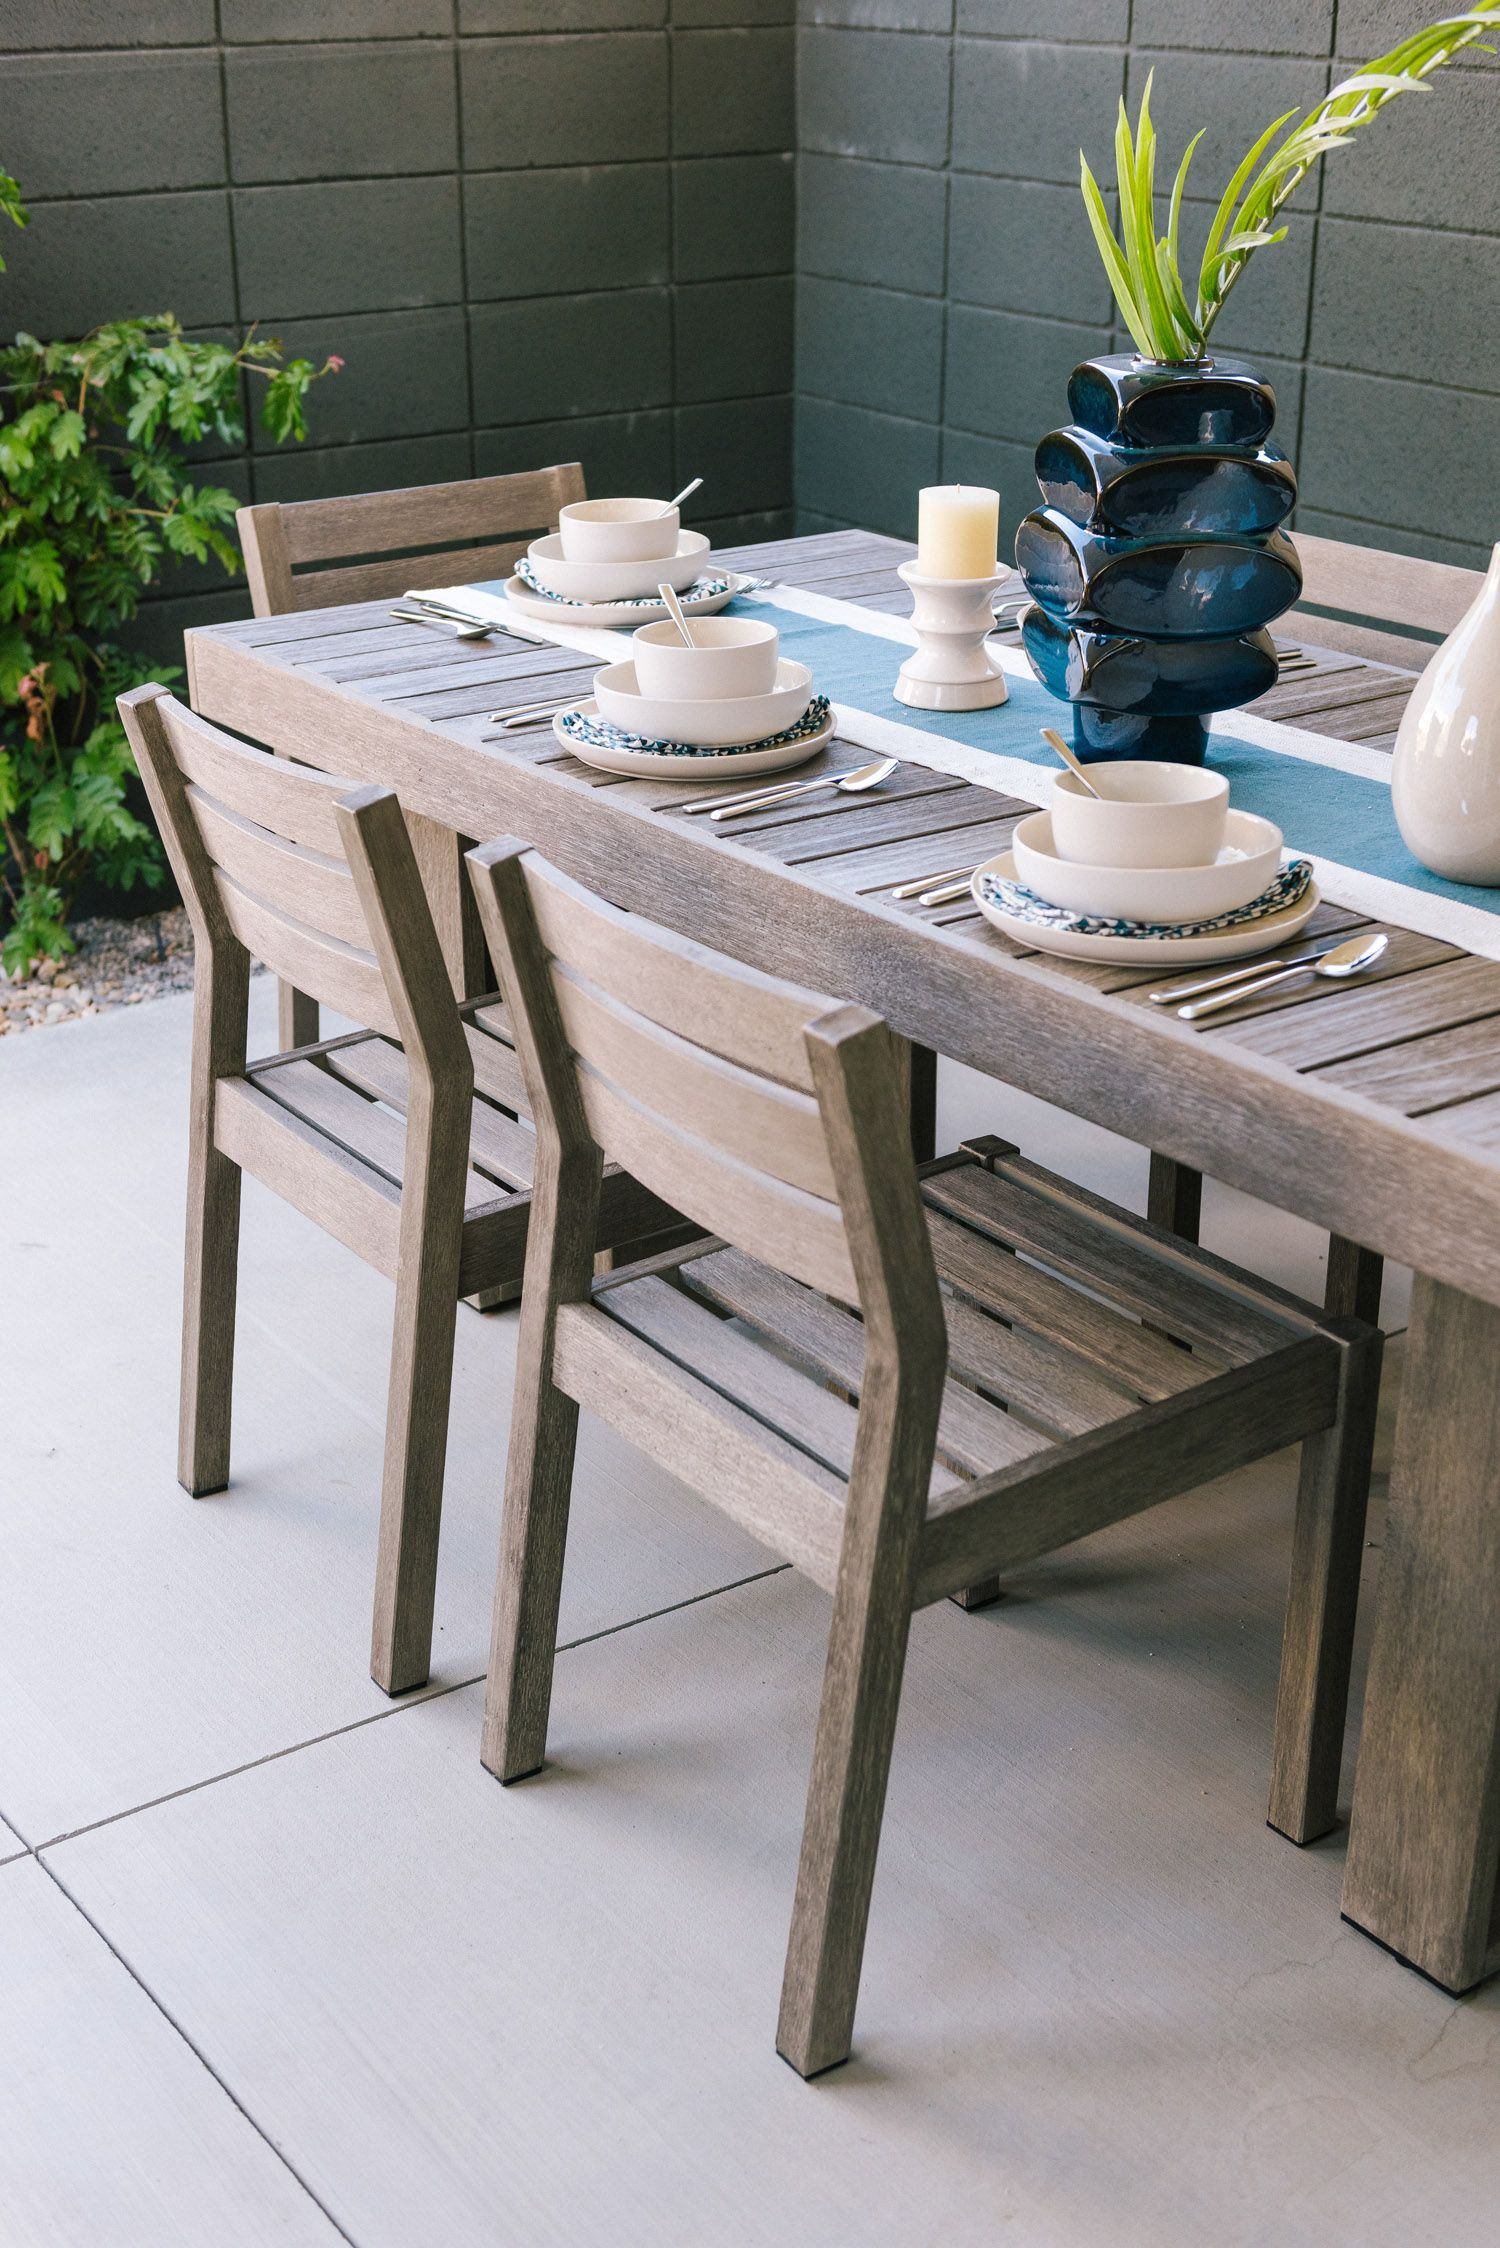 Outdoor Dining Patio Dining Table Outdoor Dining Furniture Patio Dining